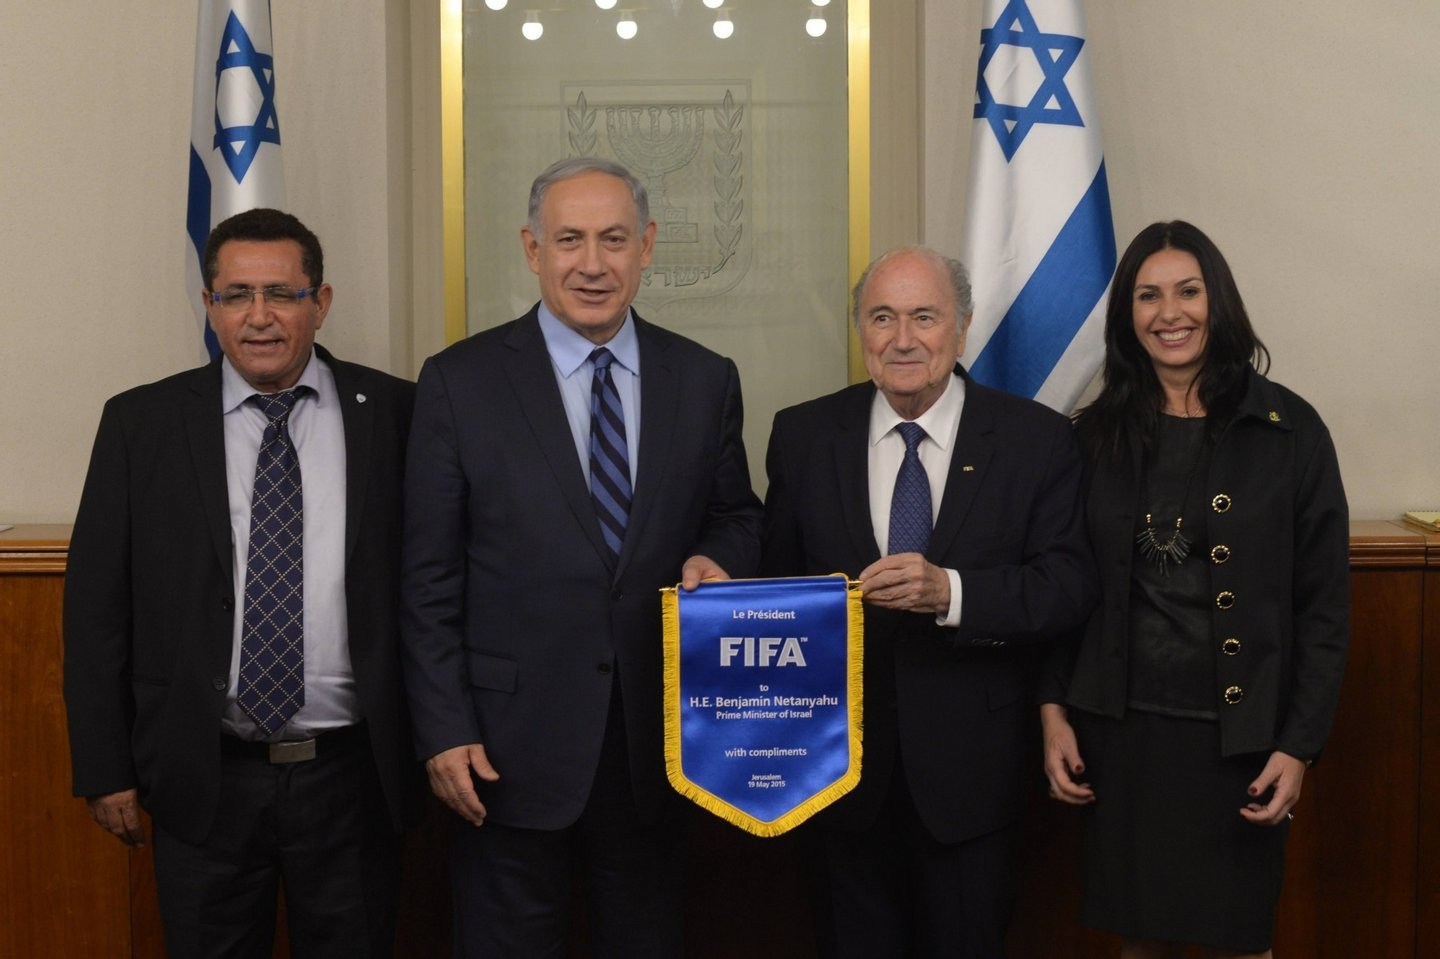 JERUSALEM, ISRAEL - MAY 19: In this handout image provided by the Government Press Office, Prime Minister of Israel Benjamin Netanyahu (2nd L) meets with FIFA president Sepp Blatter (2nd R) May 19, 2015 in Jerusalem, Israel. The two met regarding a possible motion by the Palestinian Football Association to have Israel suspended from FIFA. (Photo by Amos Ben Gershom GPO via Getty Images)